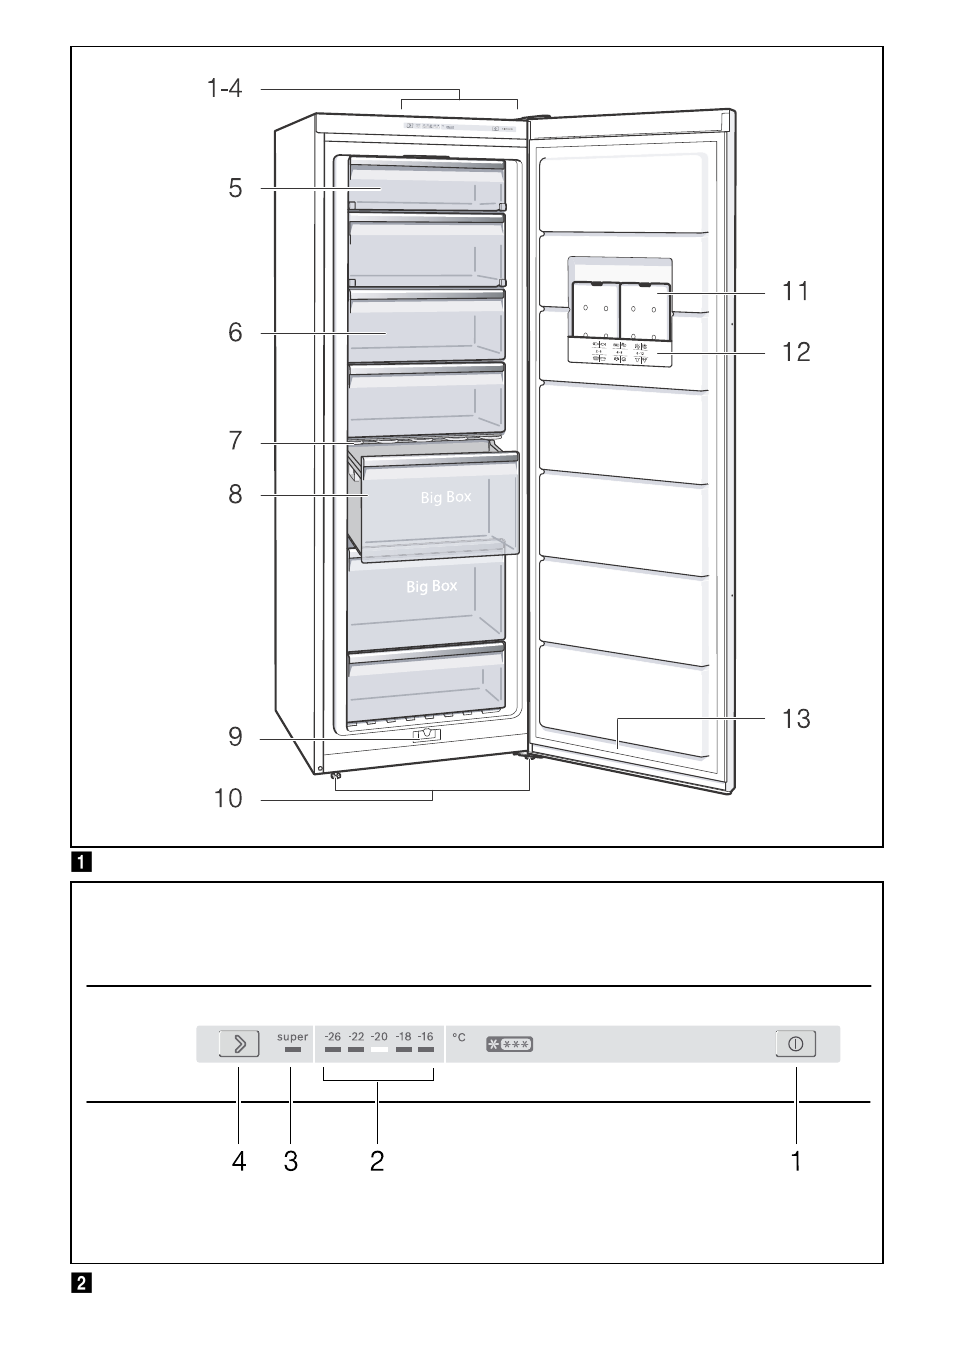 bosch gsv33vw30 cong lateur armoire confort user manual page 91 94 also for gsv29vw30